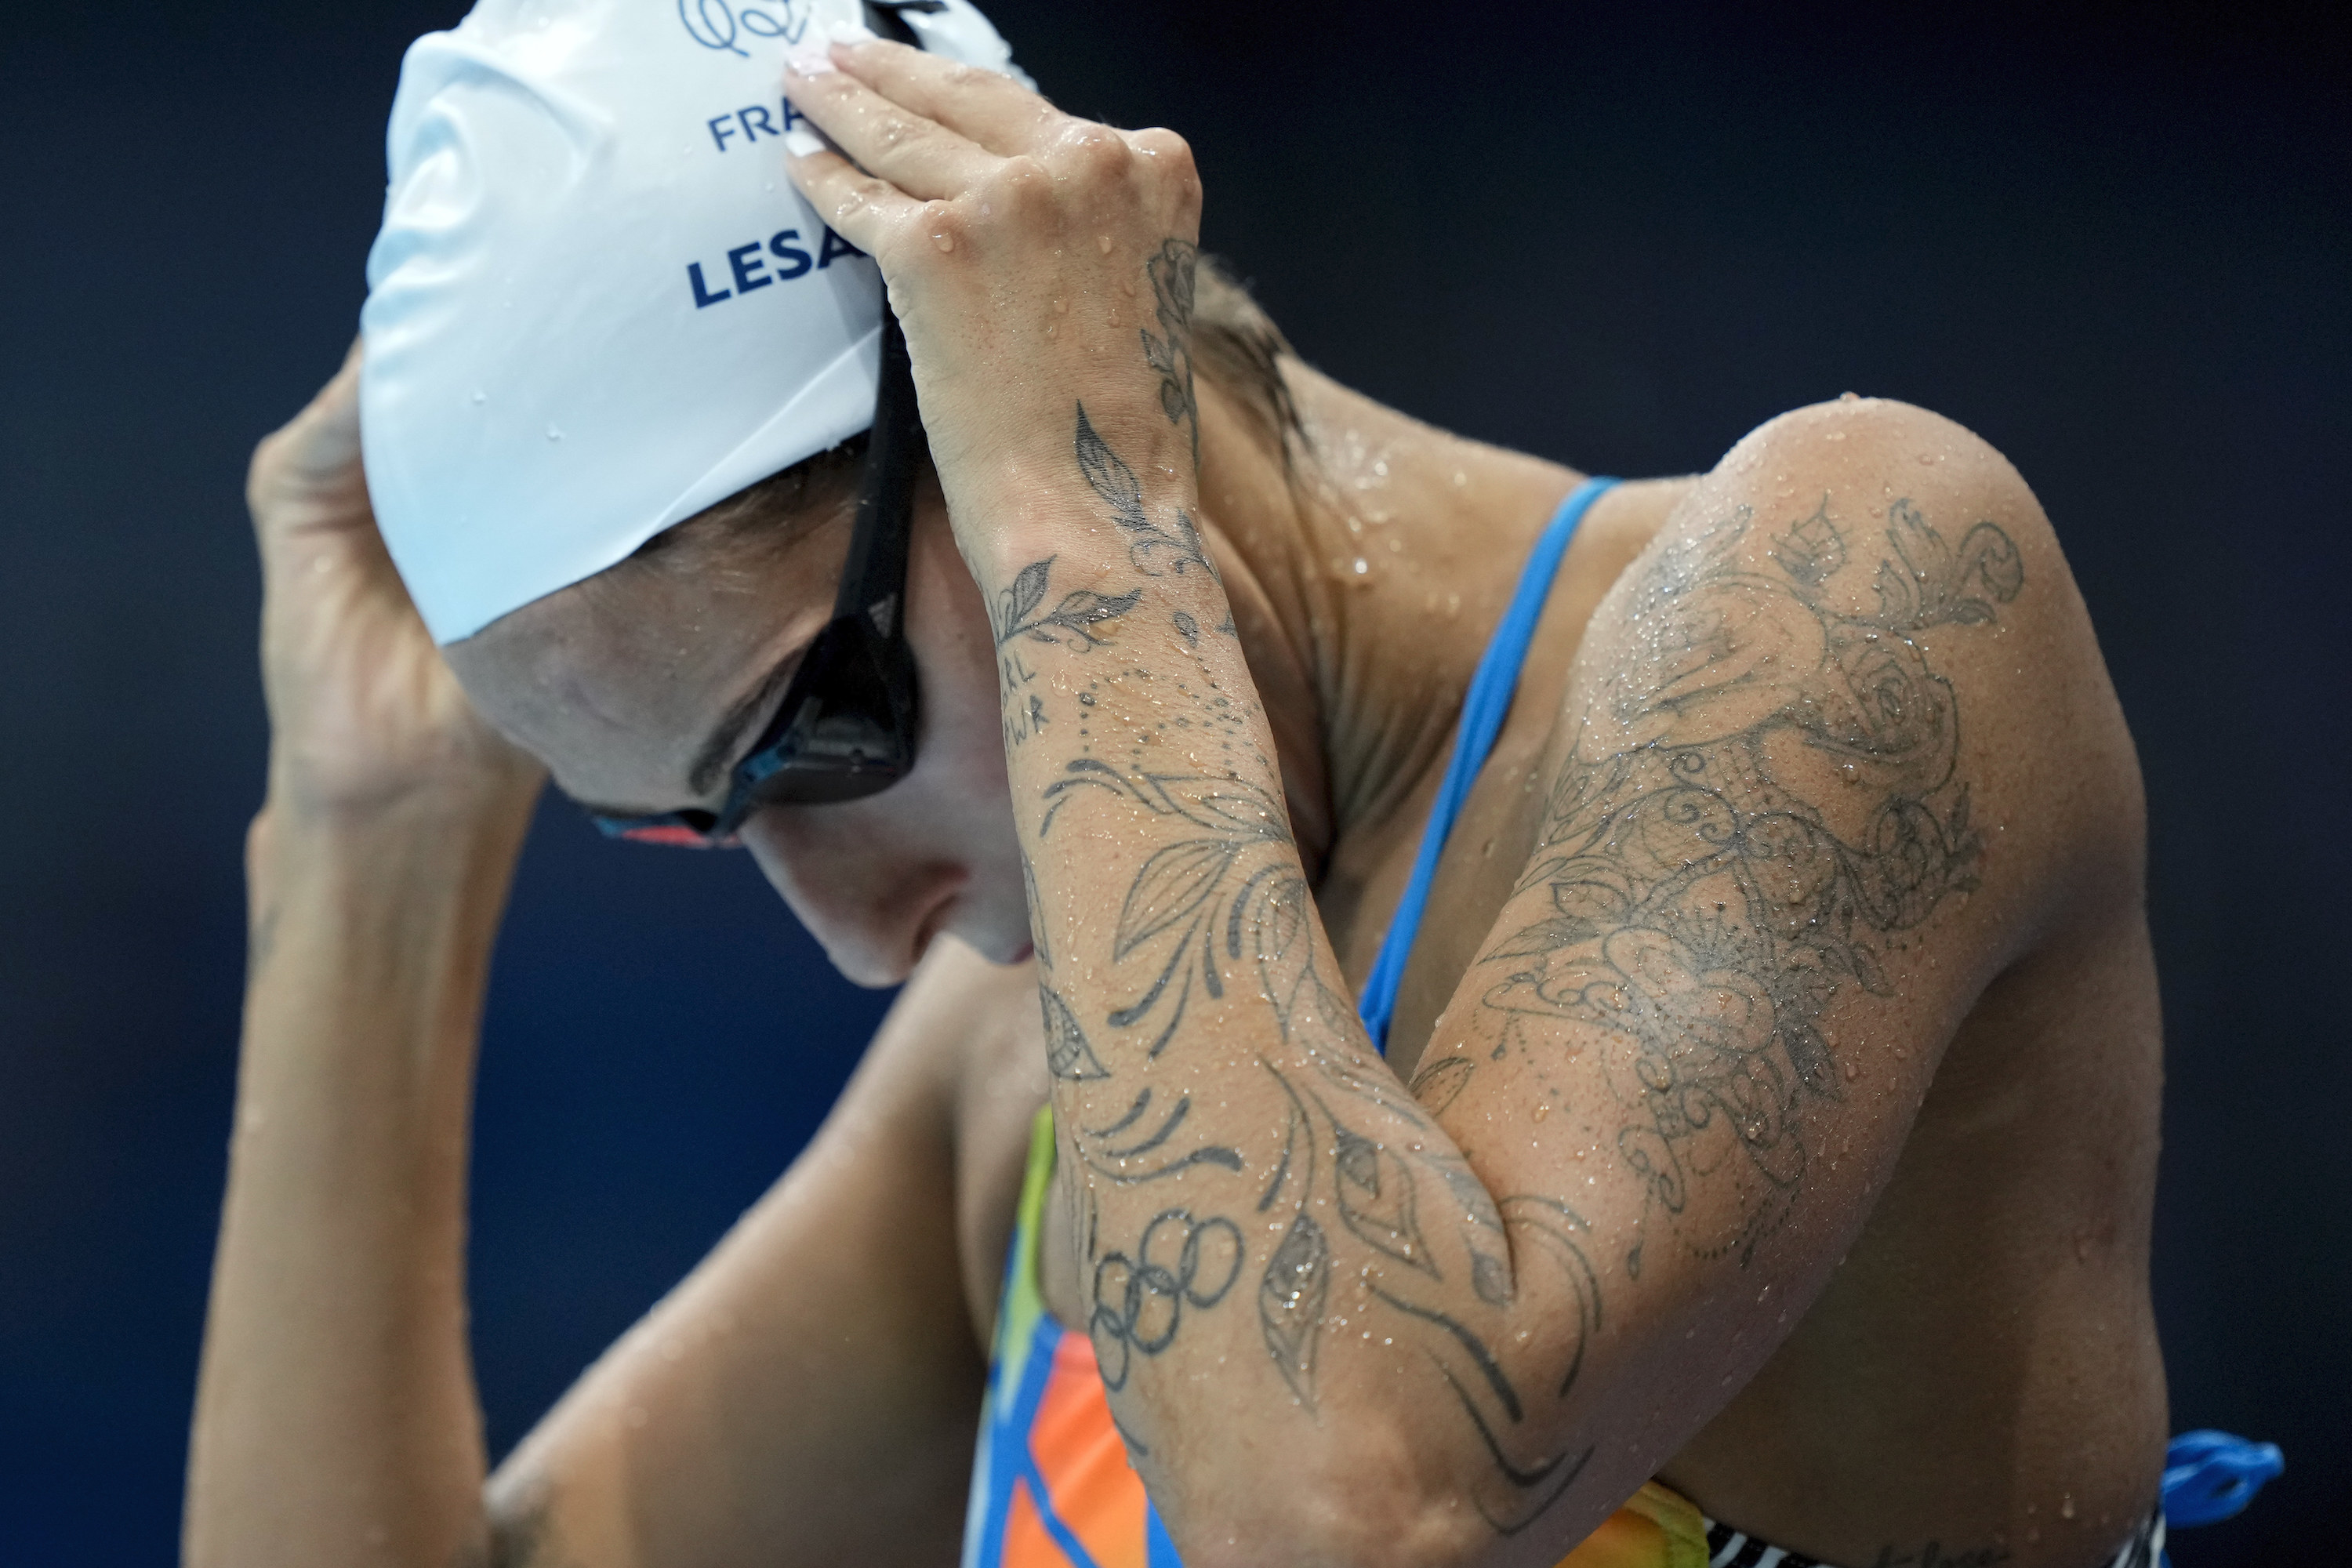 Female Olympic swimmer's arm shows dainty tattoos